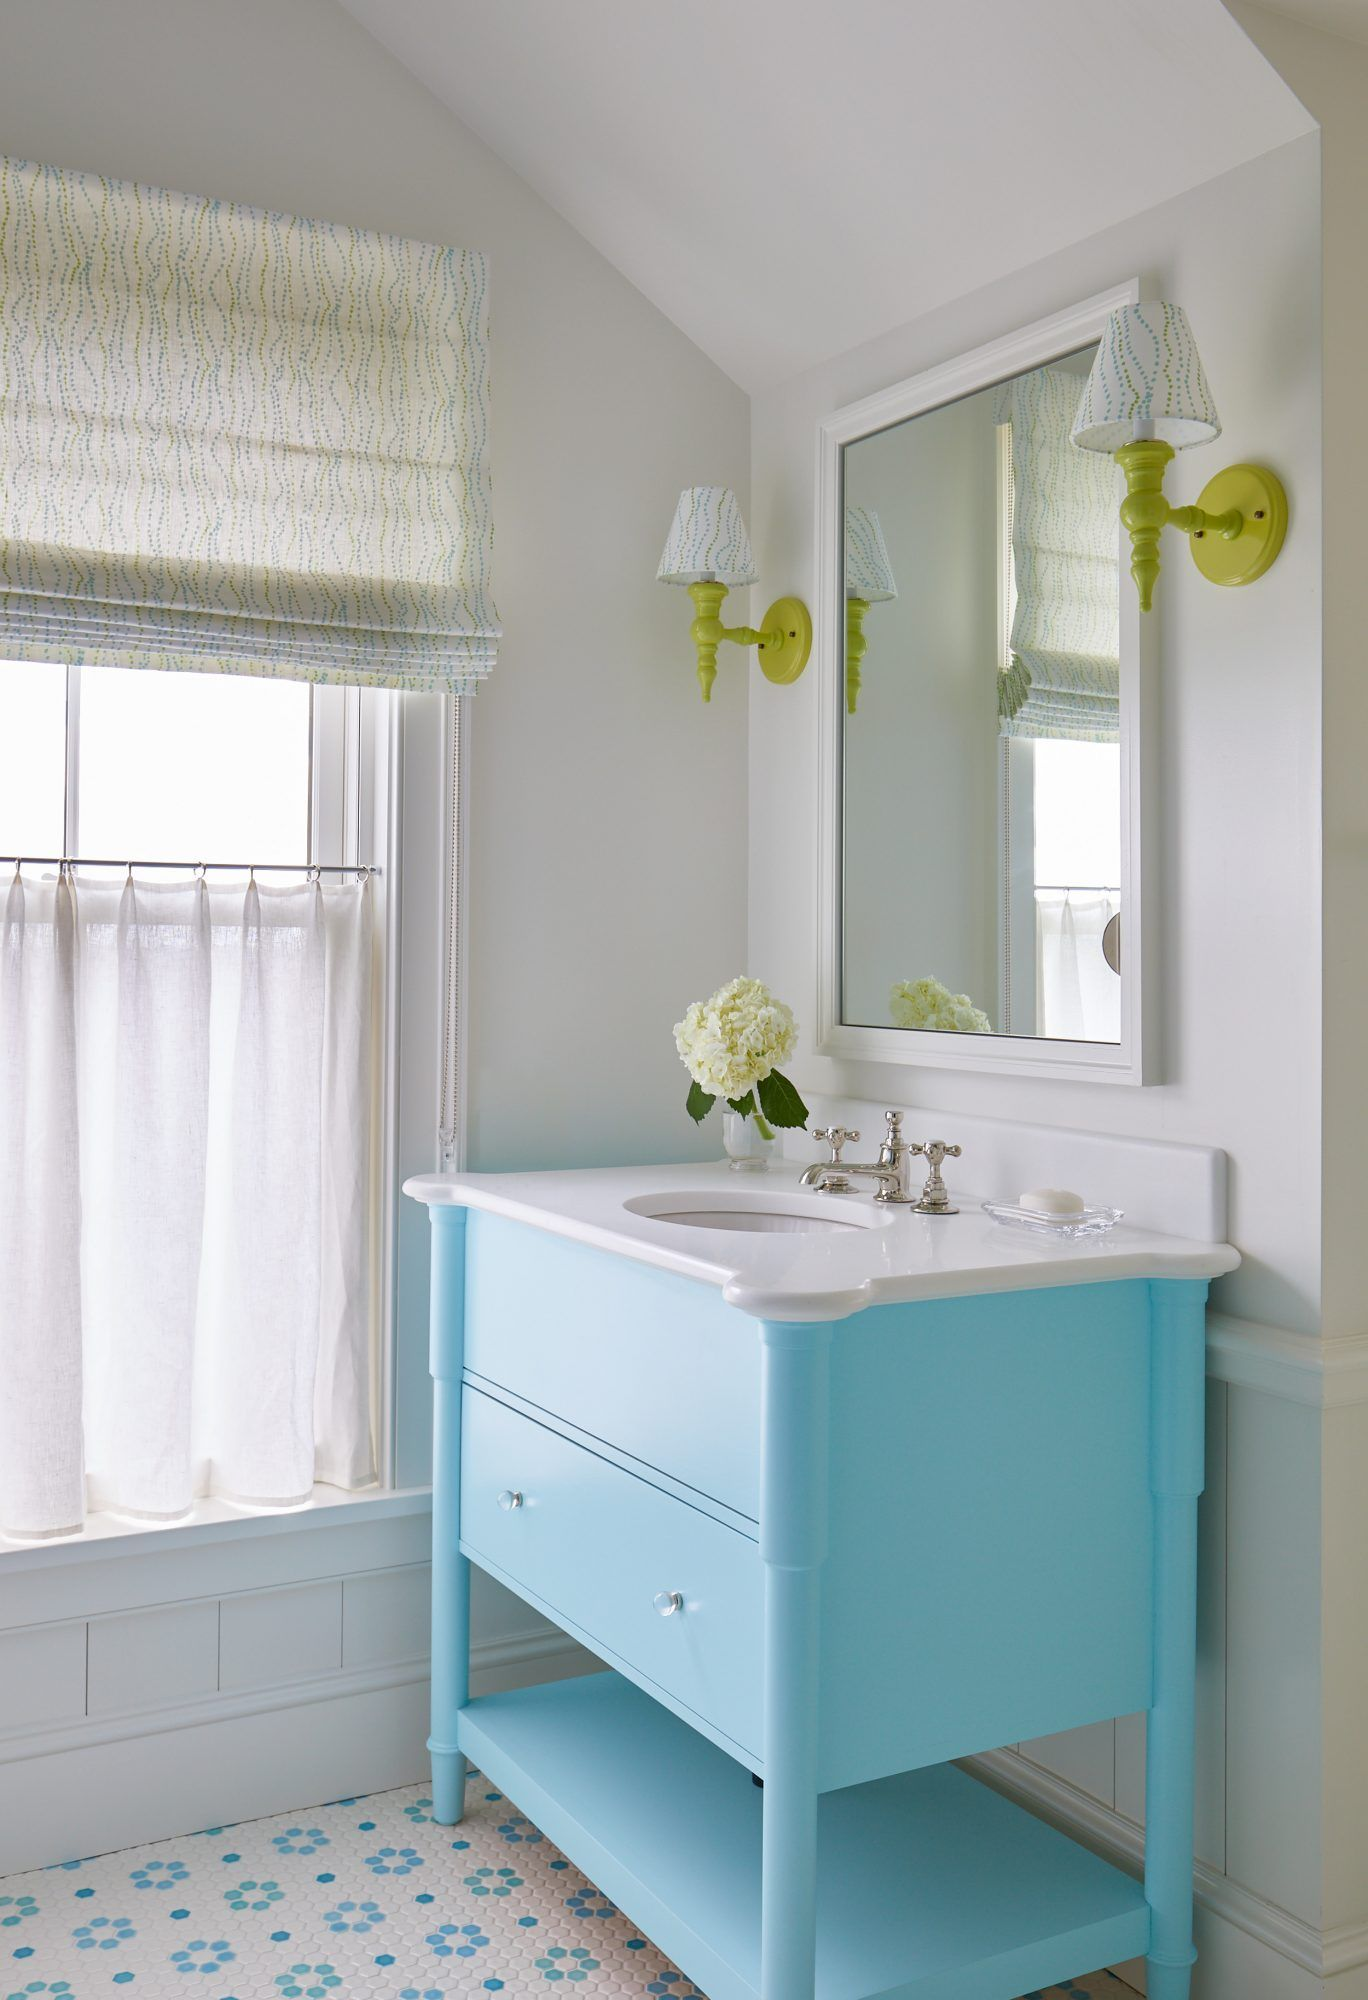 The Best Light Blue Paint Colors For Every Room According To Designers In 2020 Light Blue Paint Colors Light Blue Paints Blue Paint Colors